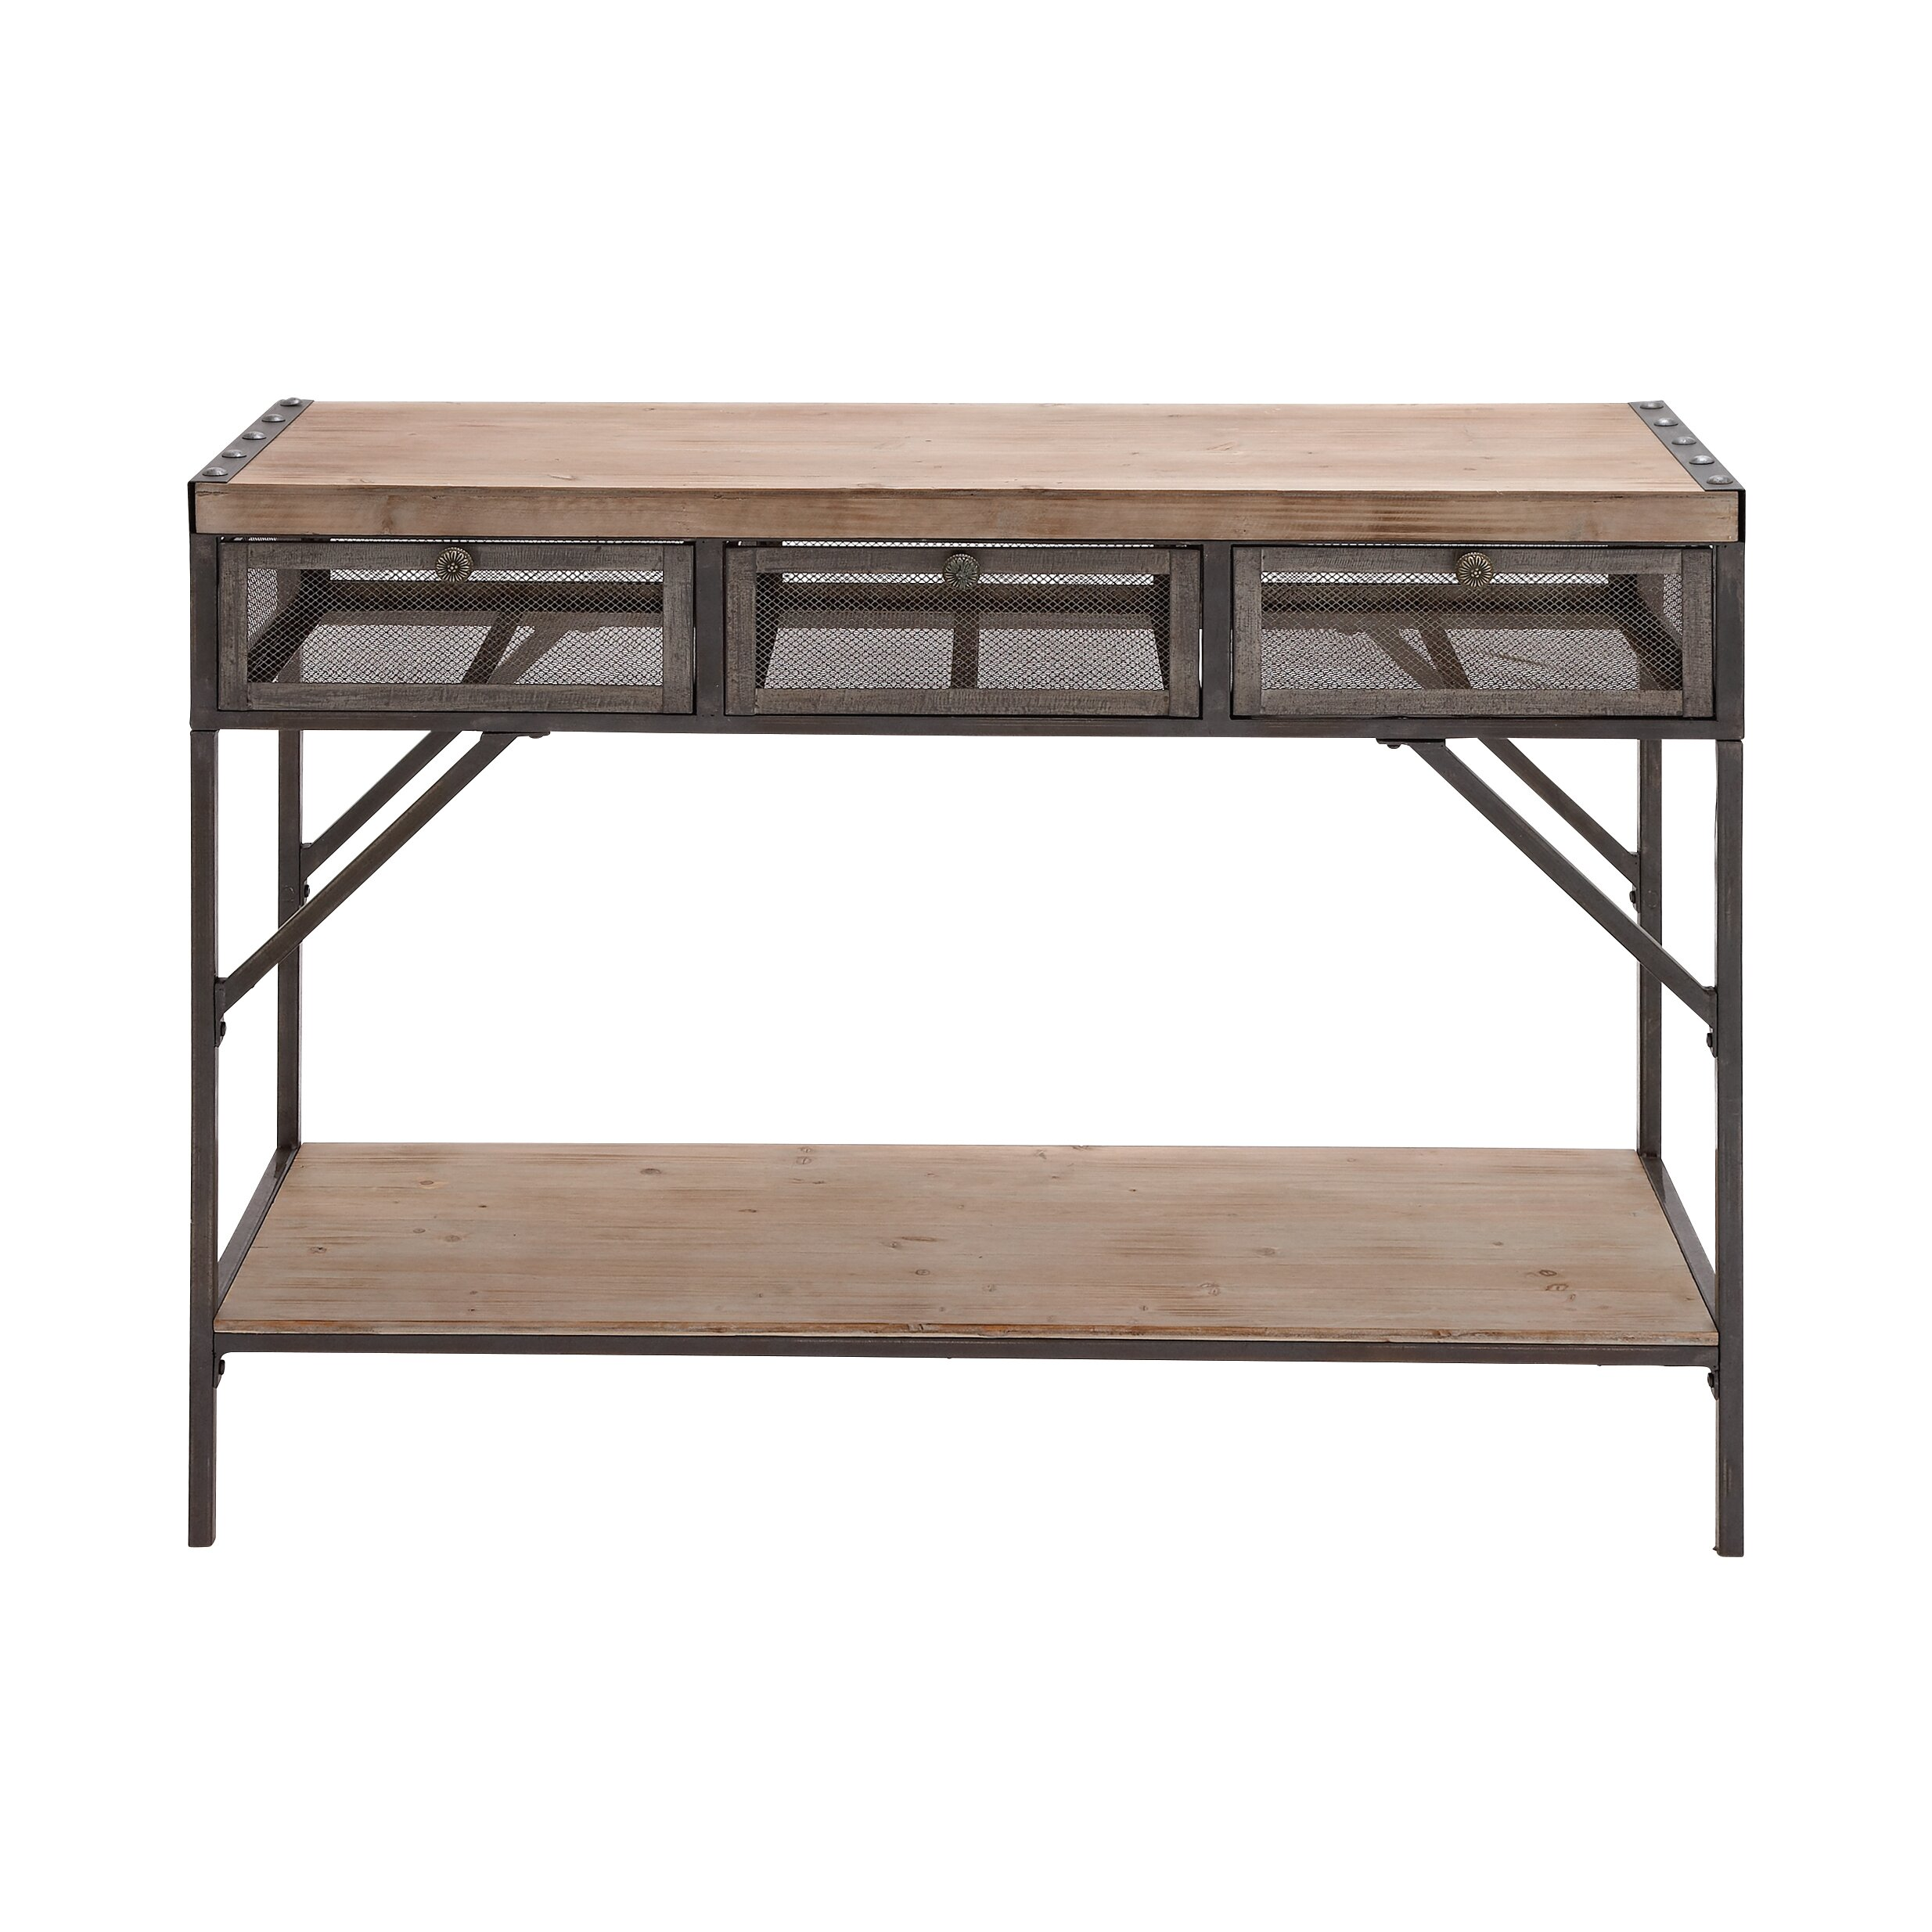 Woodland imports perfect wood metal console table Metal console table